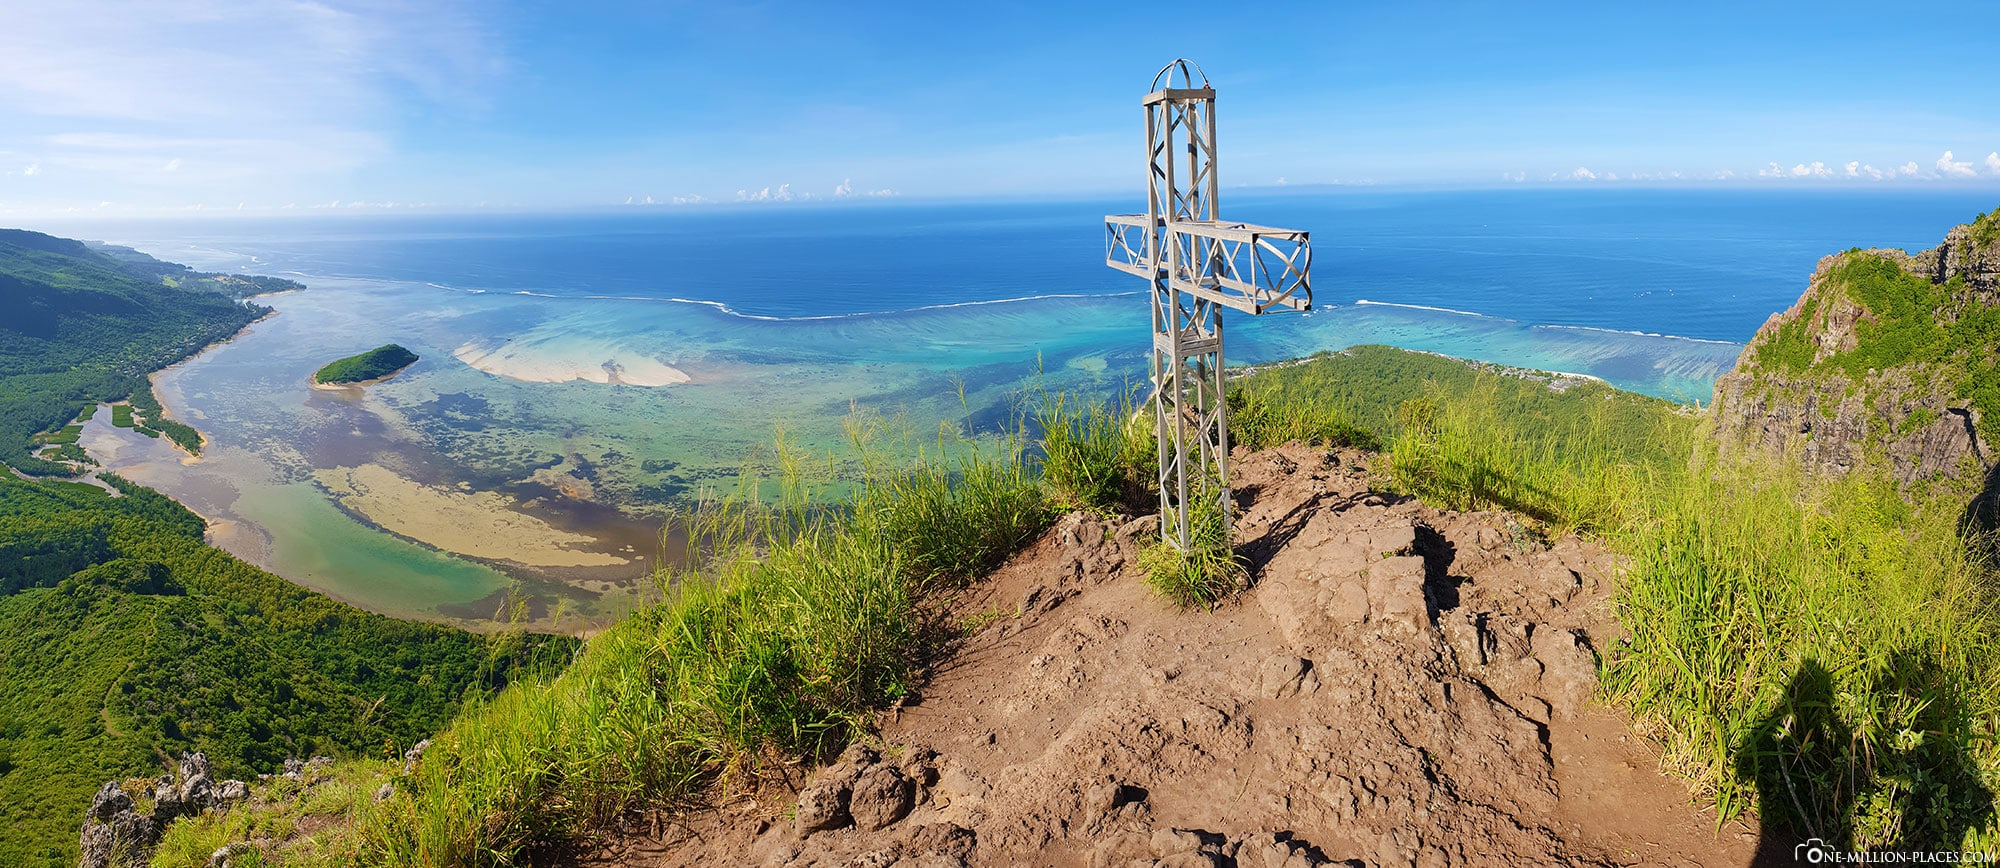 Panorama, Le Morne Brabant, Aussicht, Gipfel, Wanderung, Mauritius, Hike, Reisebericht